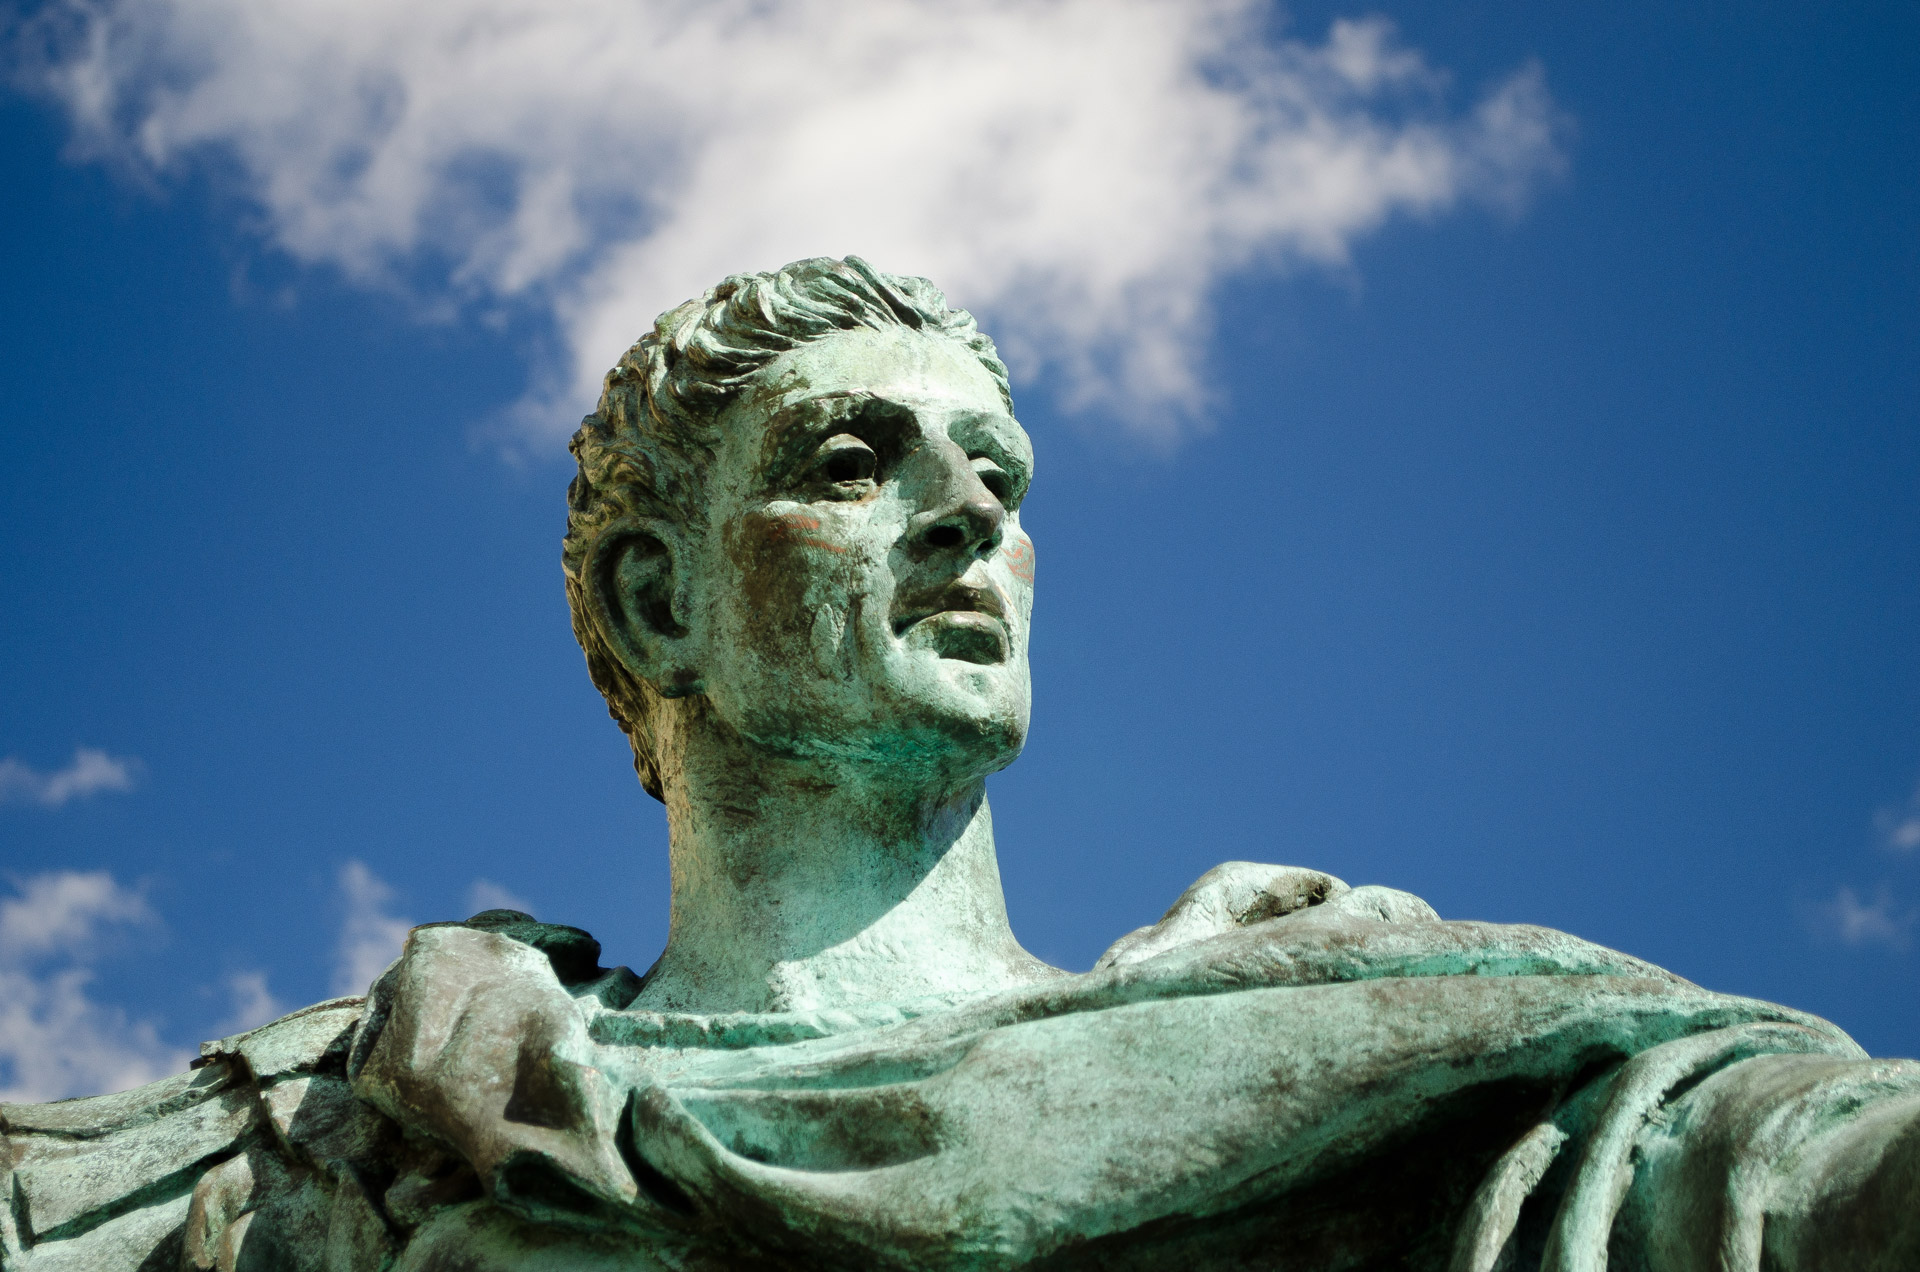 Statue of Constantine the Great outside York Minster, York, UK ( Source )